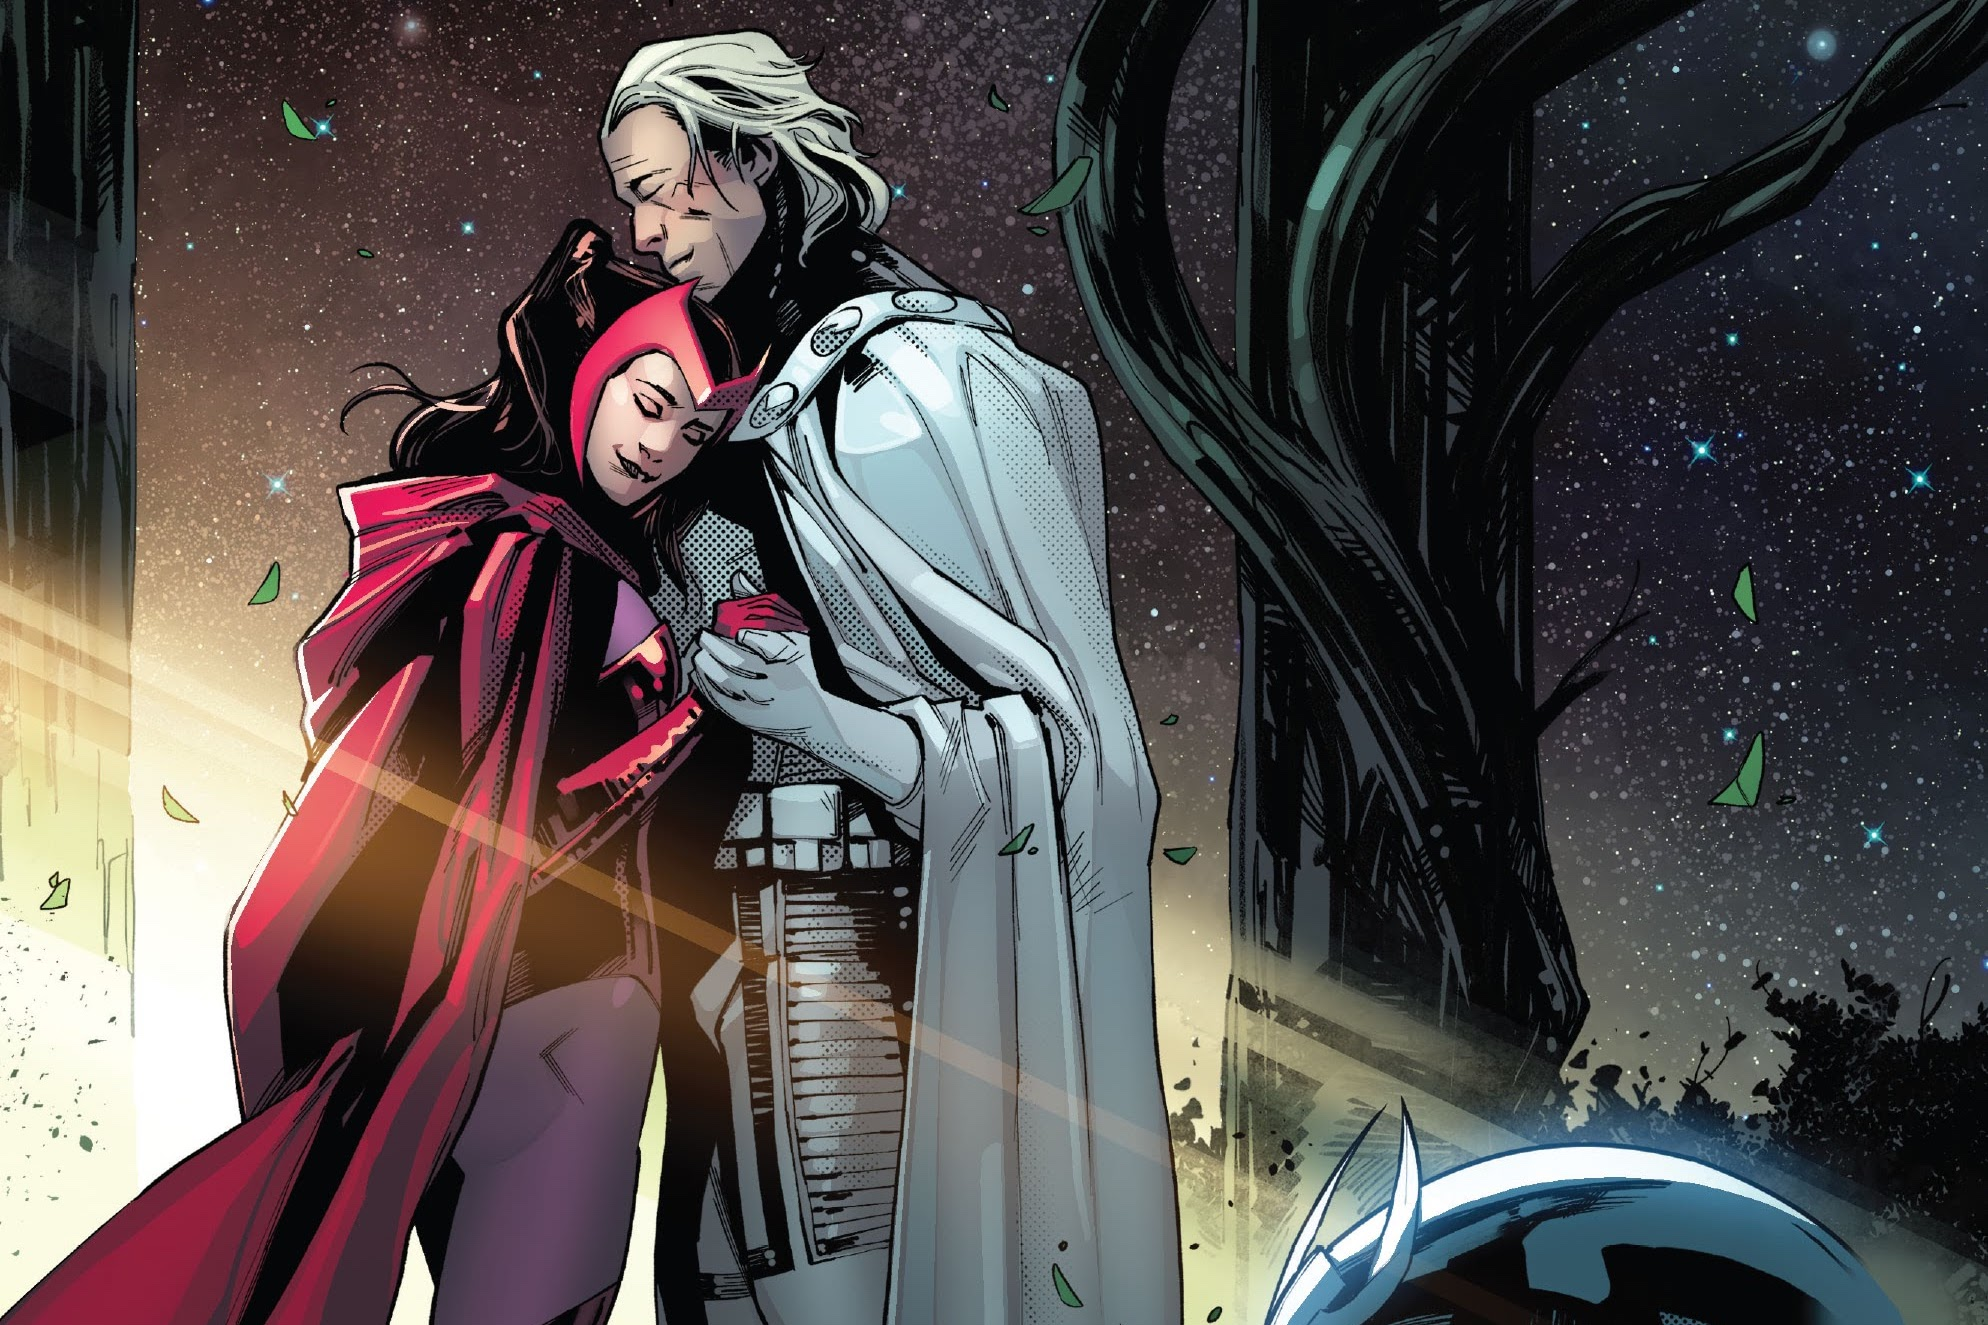 Magneto and Wanda Maximoff/Scarlet Witch embrace in SWORD #6 (2021).